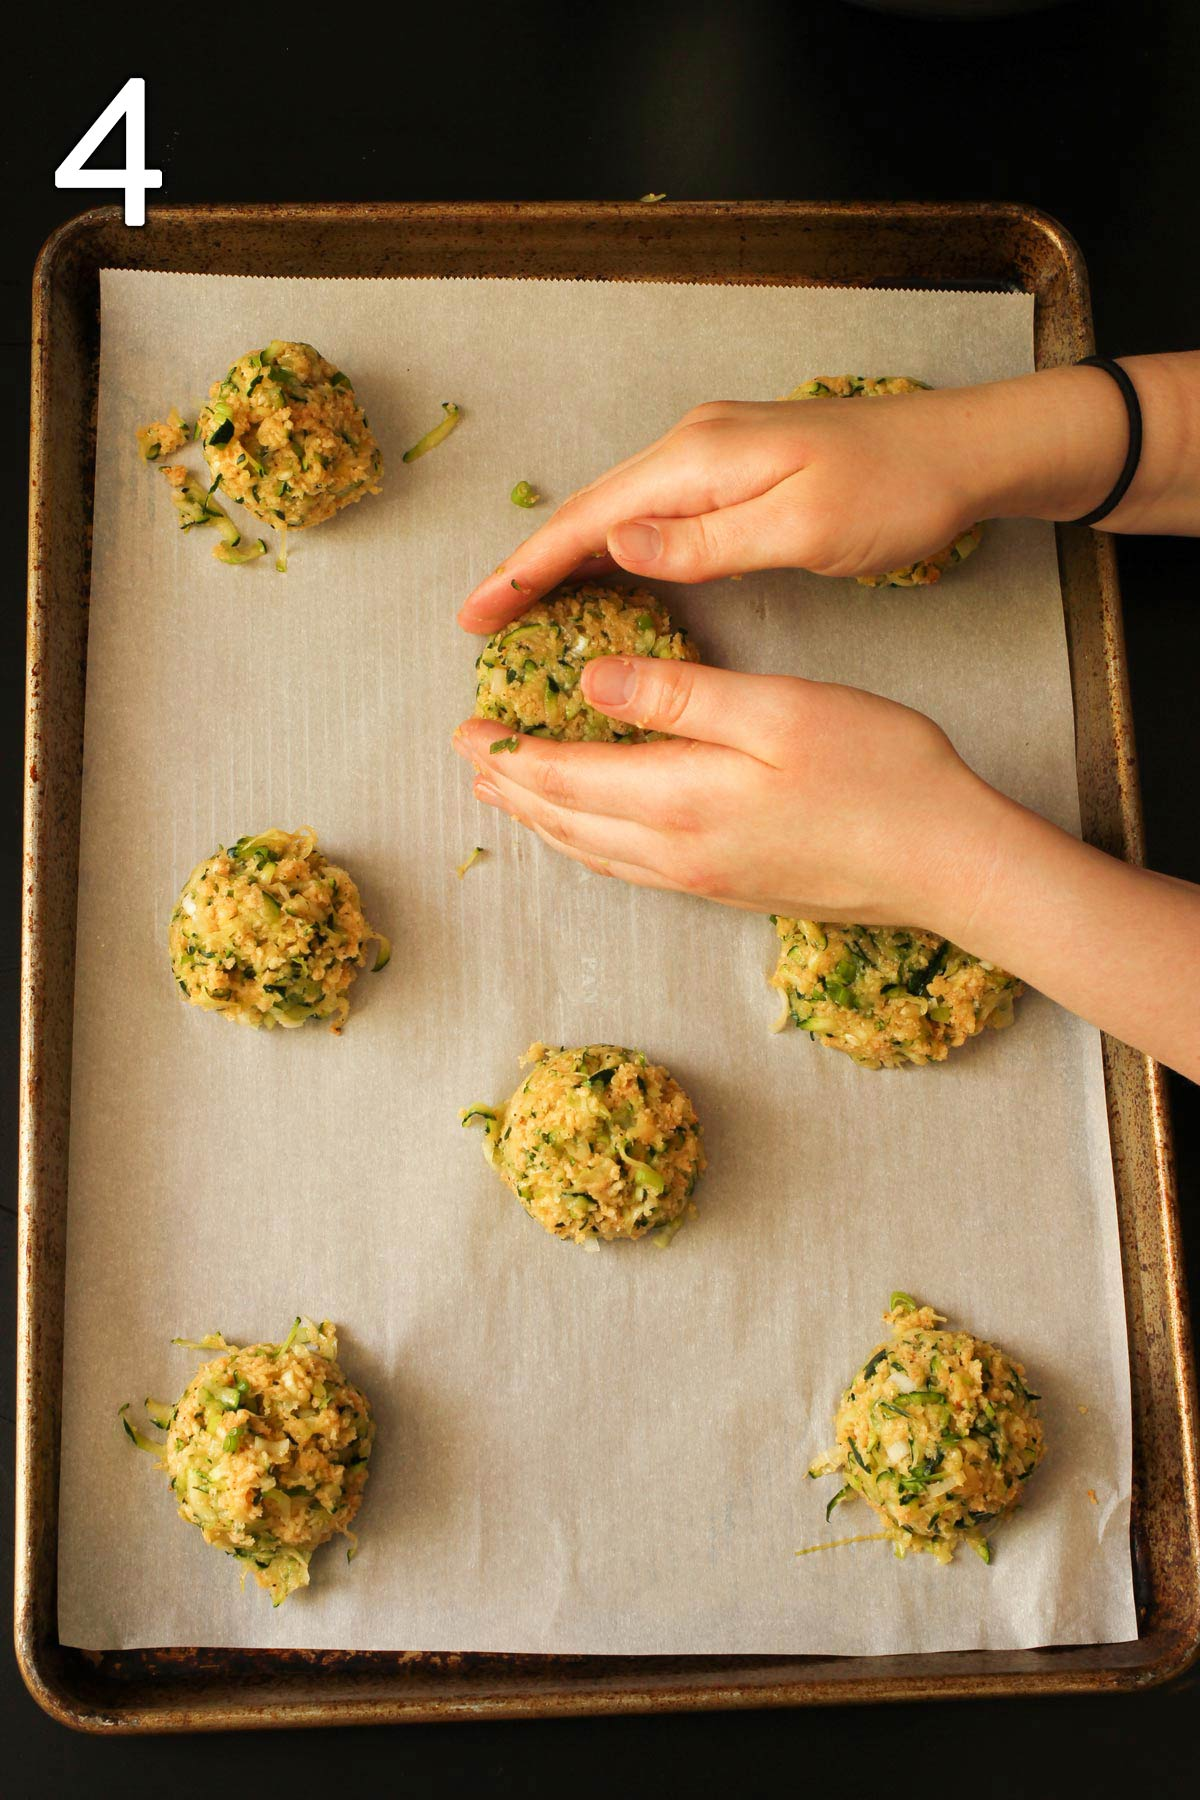 hands forming scoops of zucchini mixture into patties